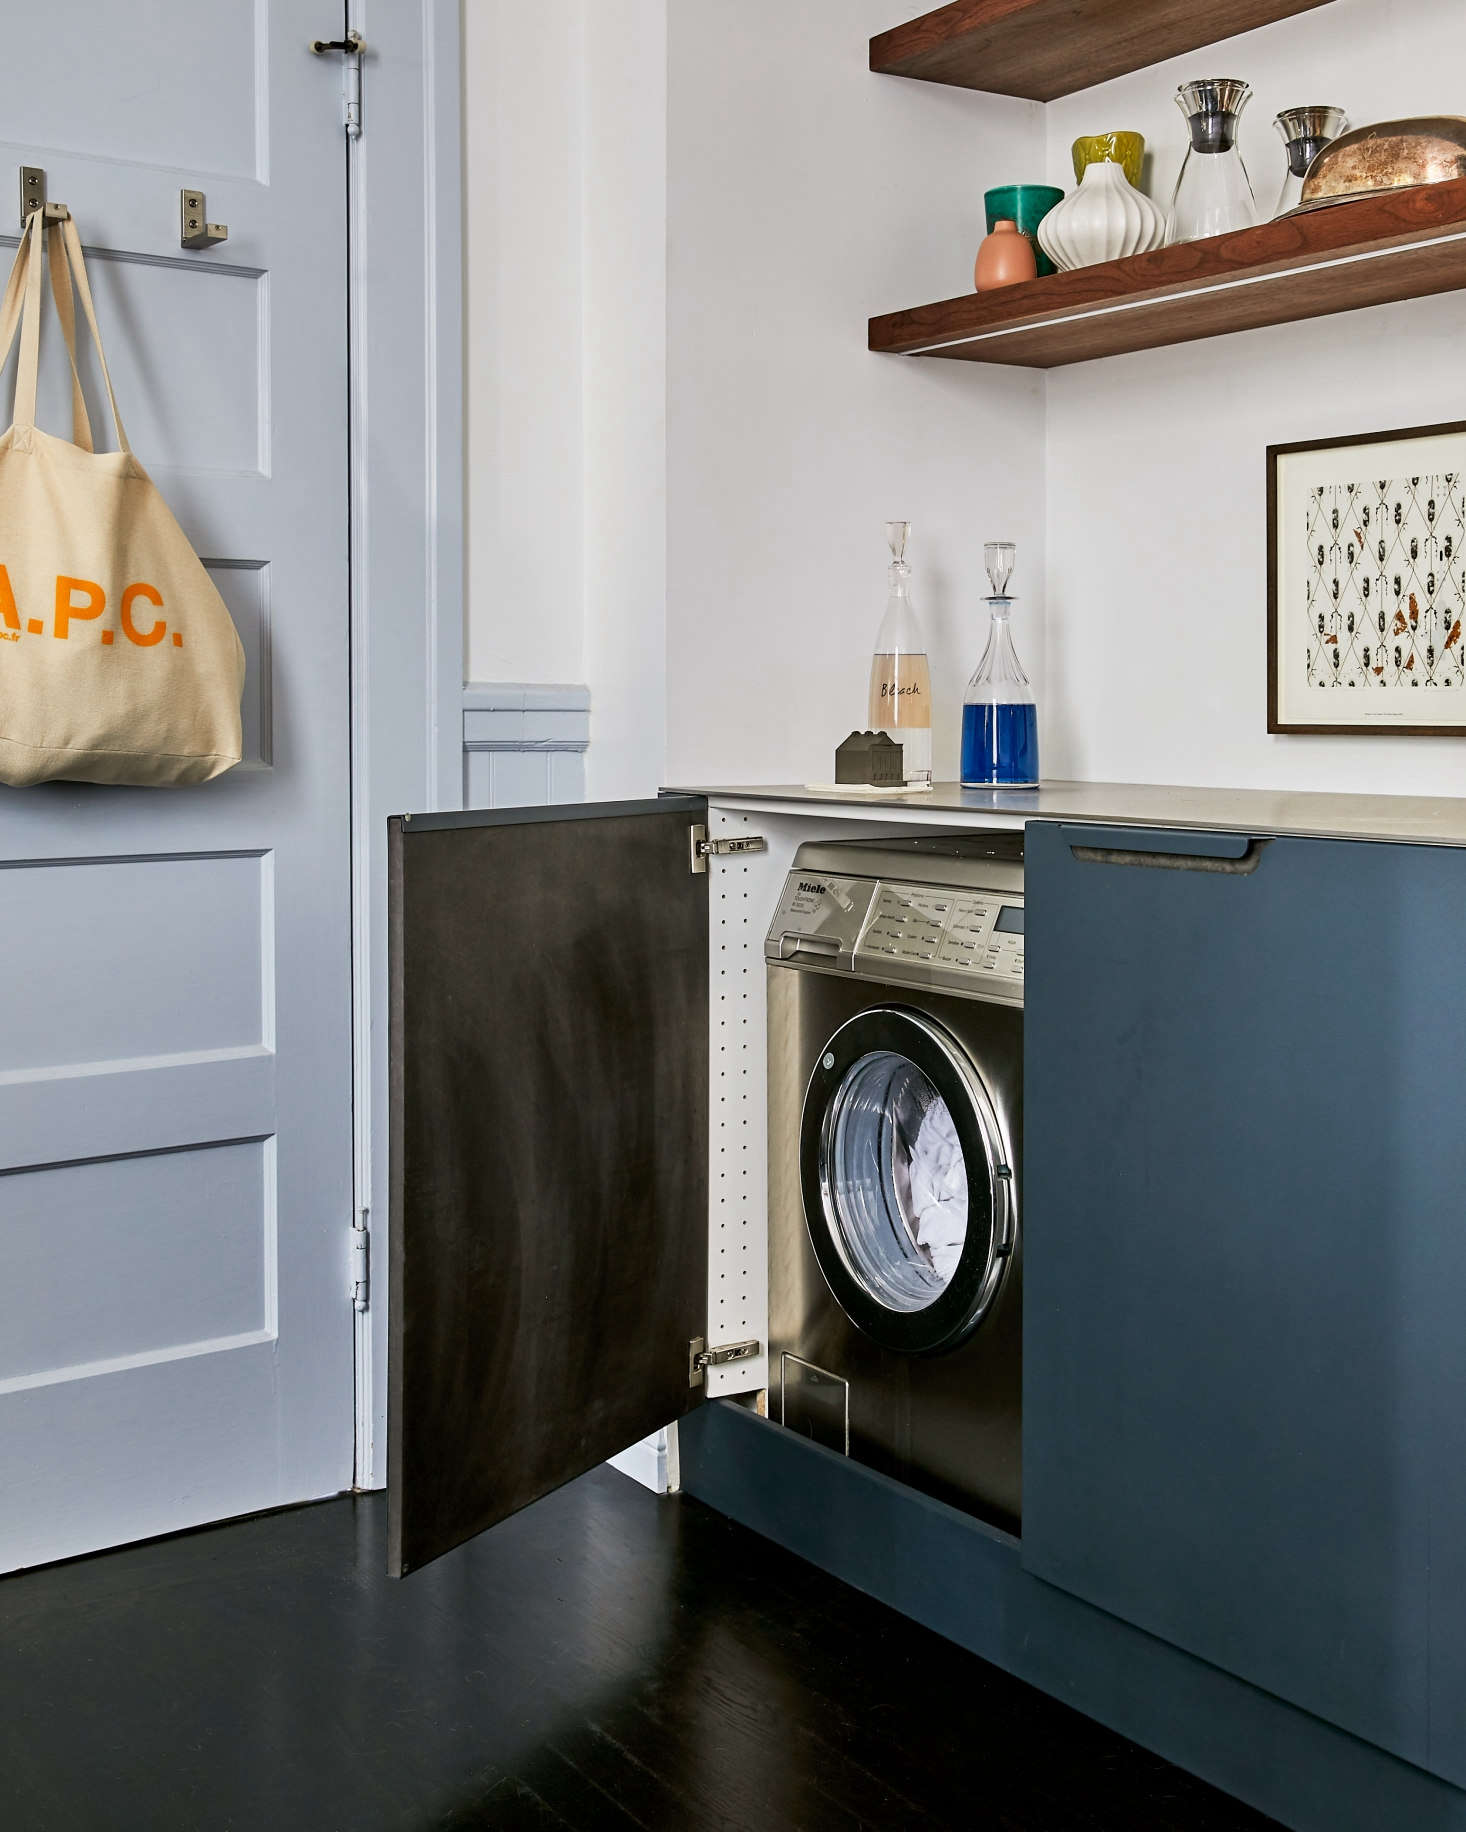 When not in use the washer and dryer disappear behind cabinet doors.